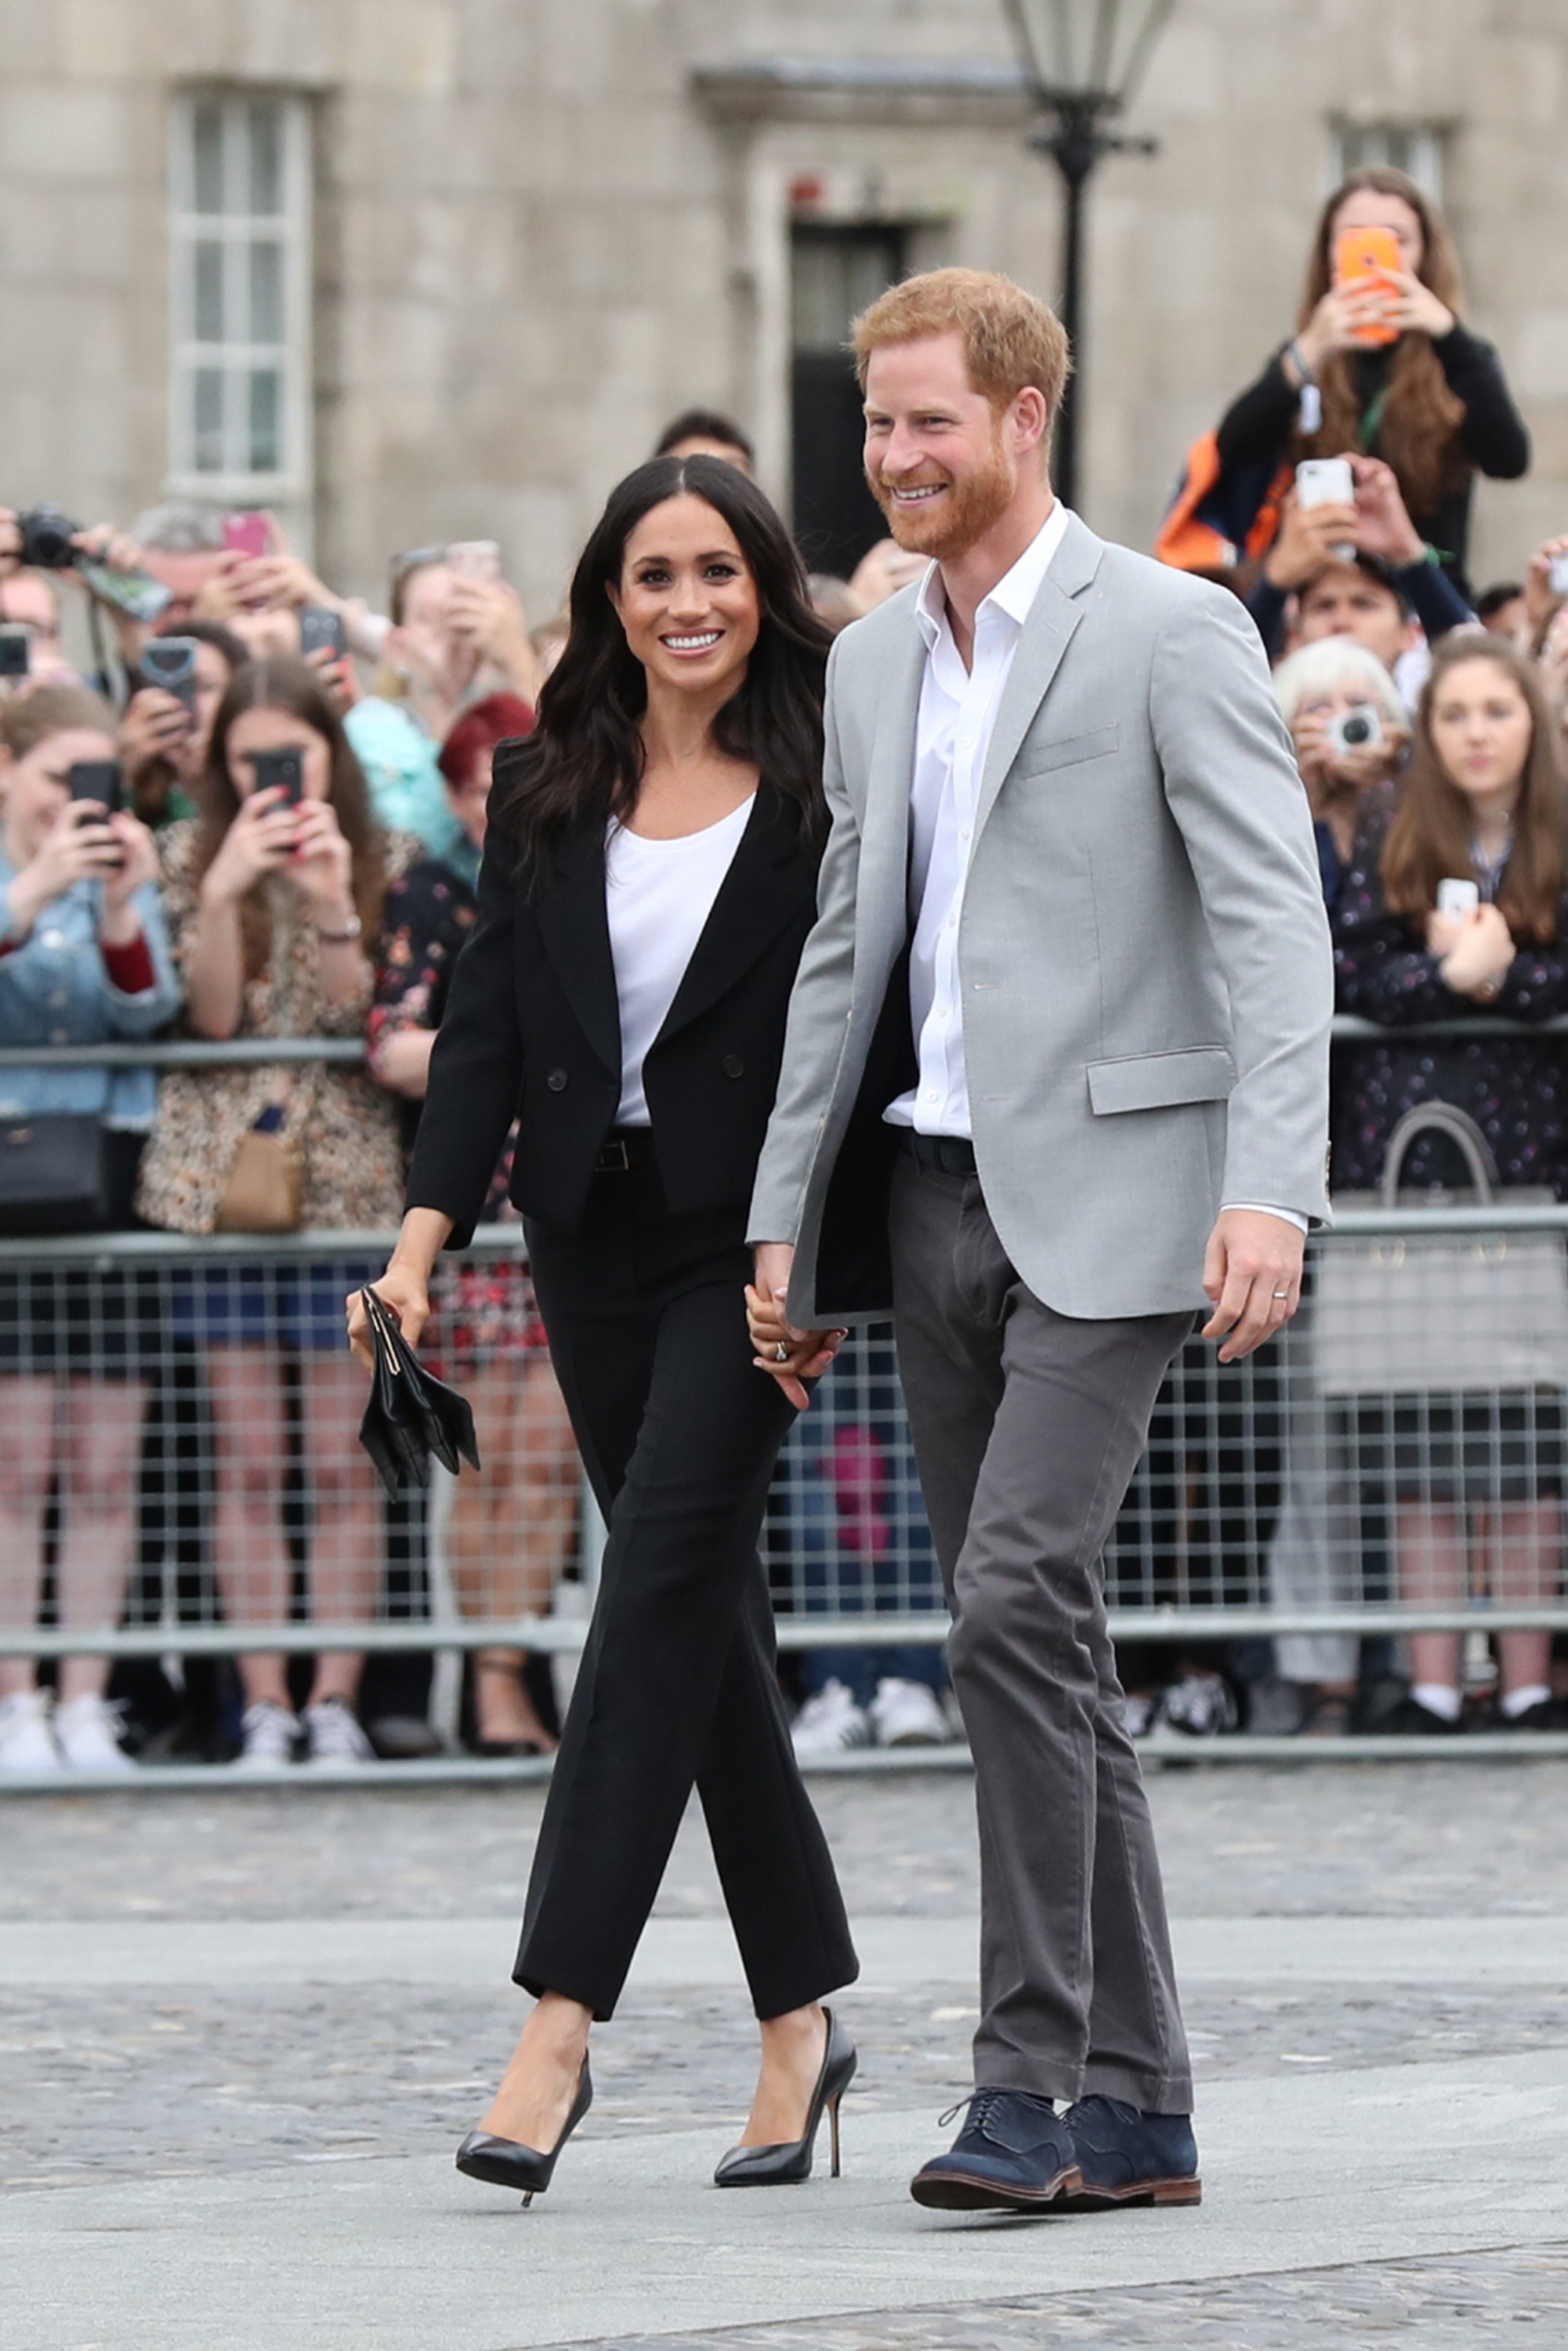 Prince Harry, Duke of Sussex and Meghan, Duchess of Sussex, visit Trinity College on the second day of their official two-day royal visit to Ireland on July 11, 2018, in Dublin, Ireland. It is the royal couple's first foreign trip together since they were married earlier this year.